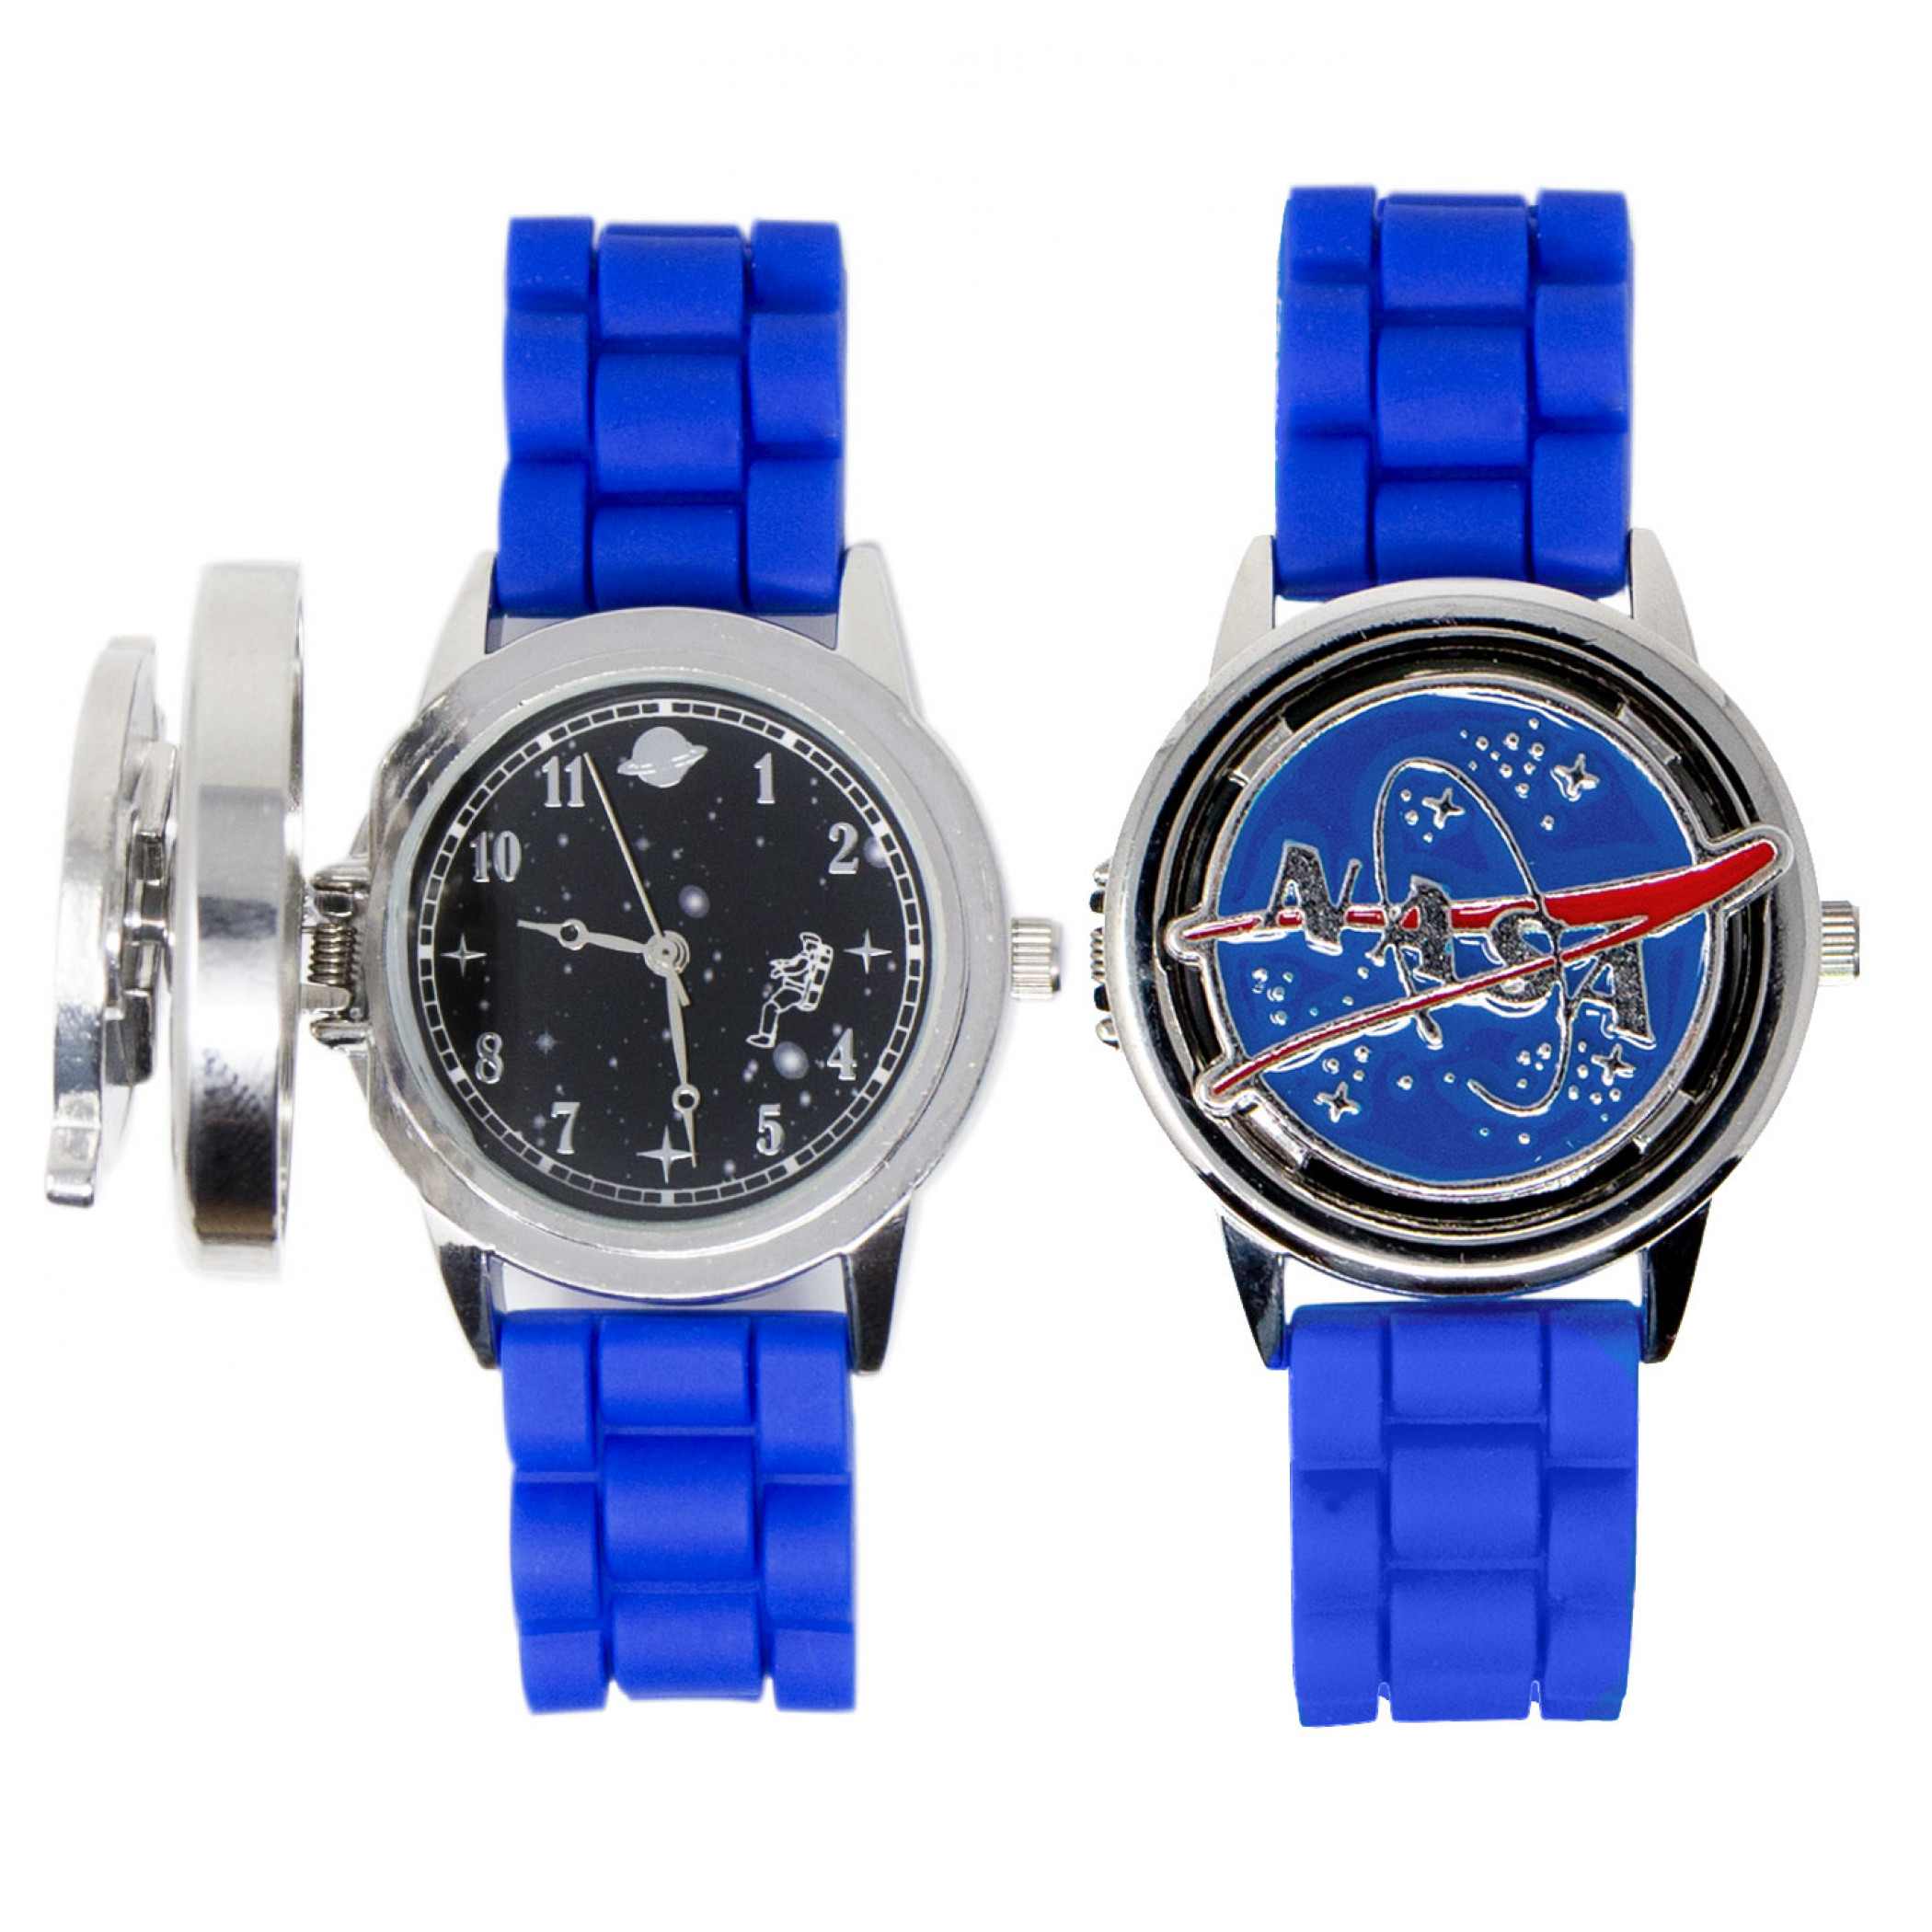 NASA Logo with Space Themed Dial Watch